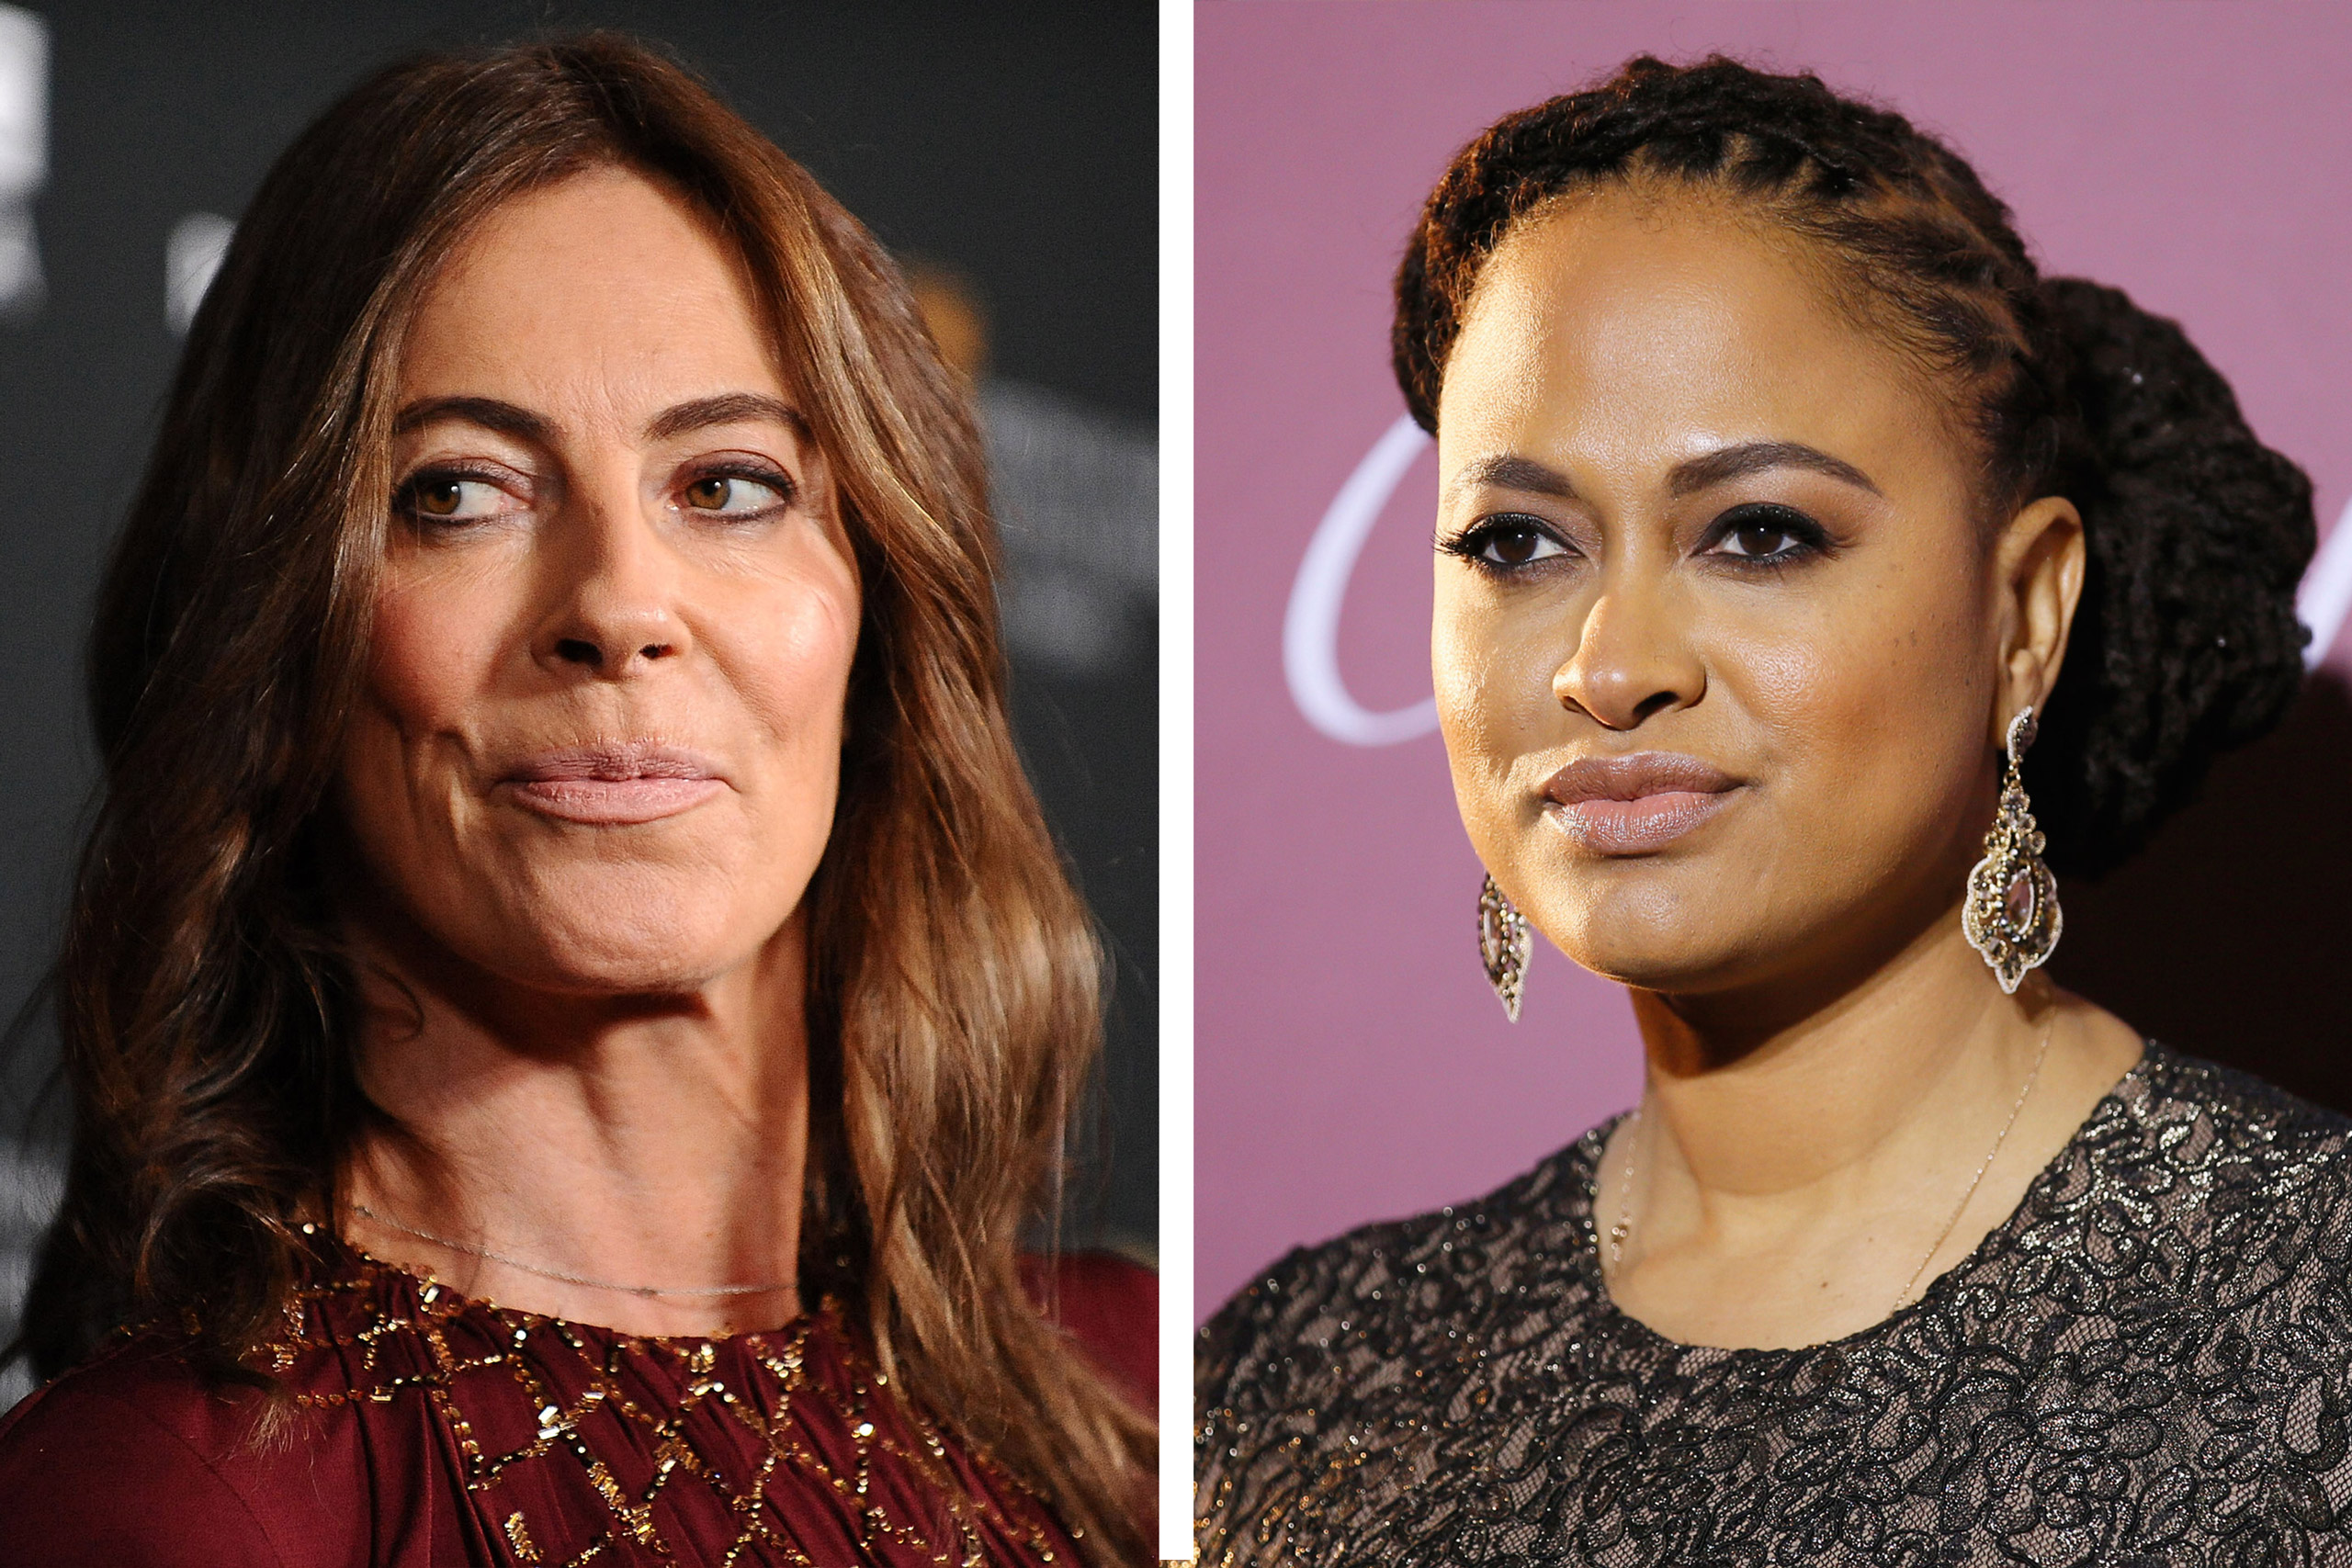 Left:  Kathryn Bigelow attends the BAFTA Los Angeles Britannia Awards at The Beverly Hilton Hotel in Beverly Hills, Calif., on Nov. 9, 2013; Right: Ava DuVernay poses at the 26th Annual Palm Springs International Film Festival Awards Gala in Palm Springs, Calif., on Jan. 3, 2015.